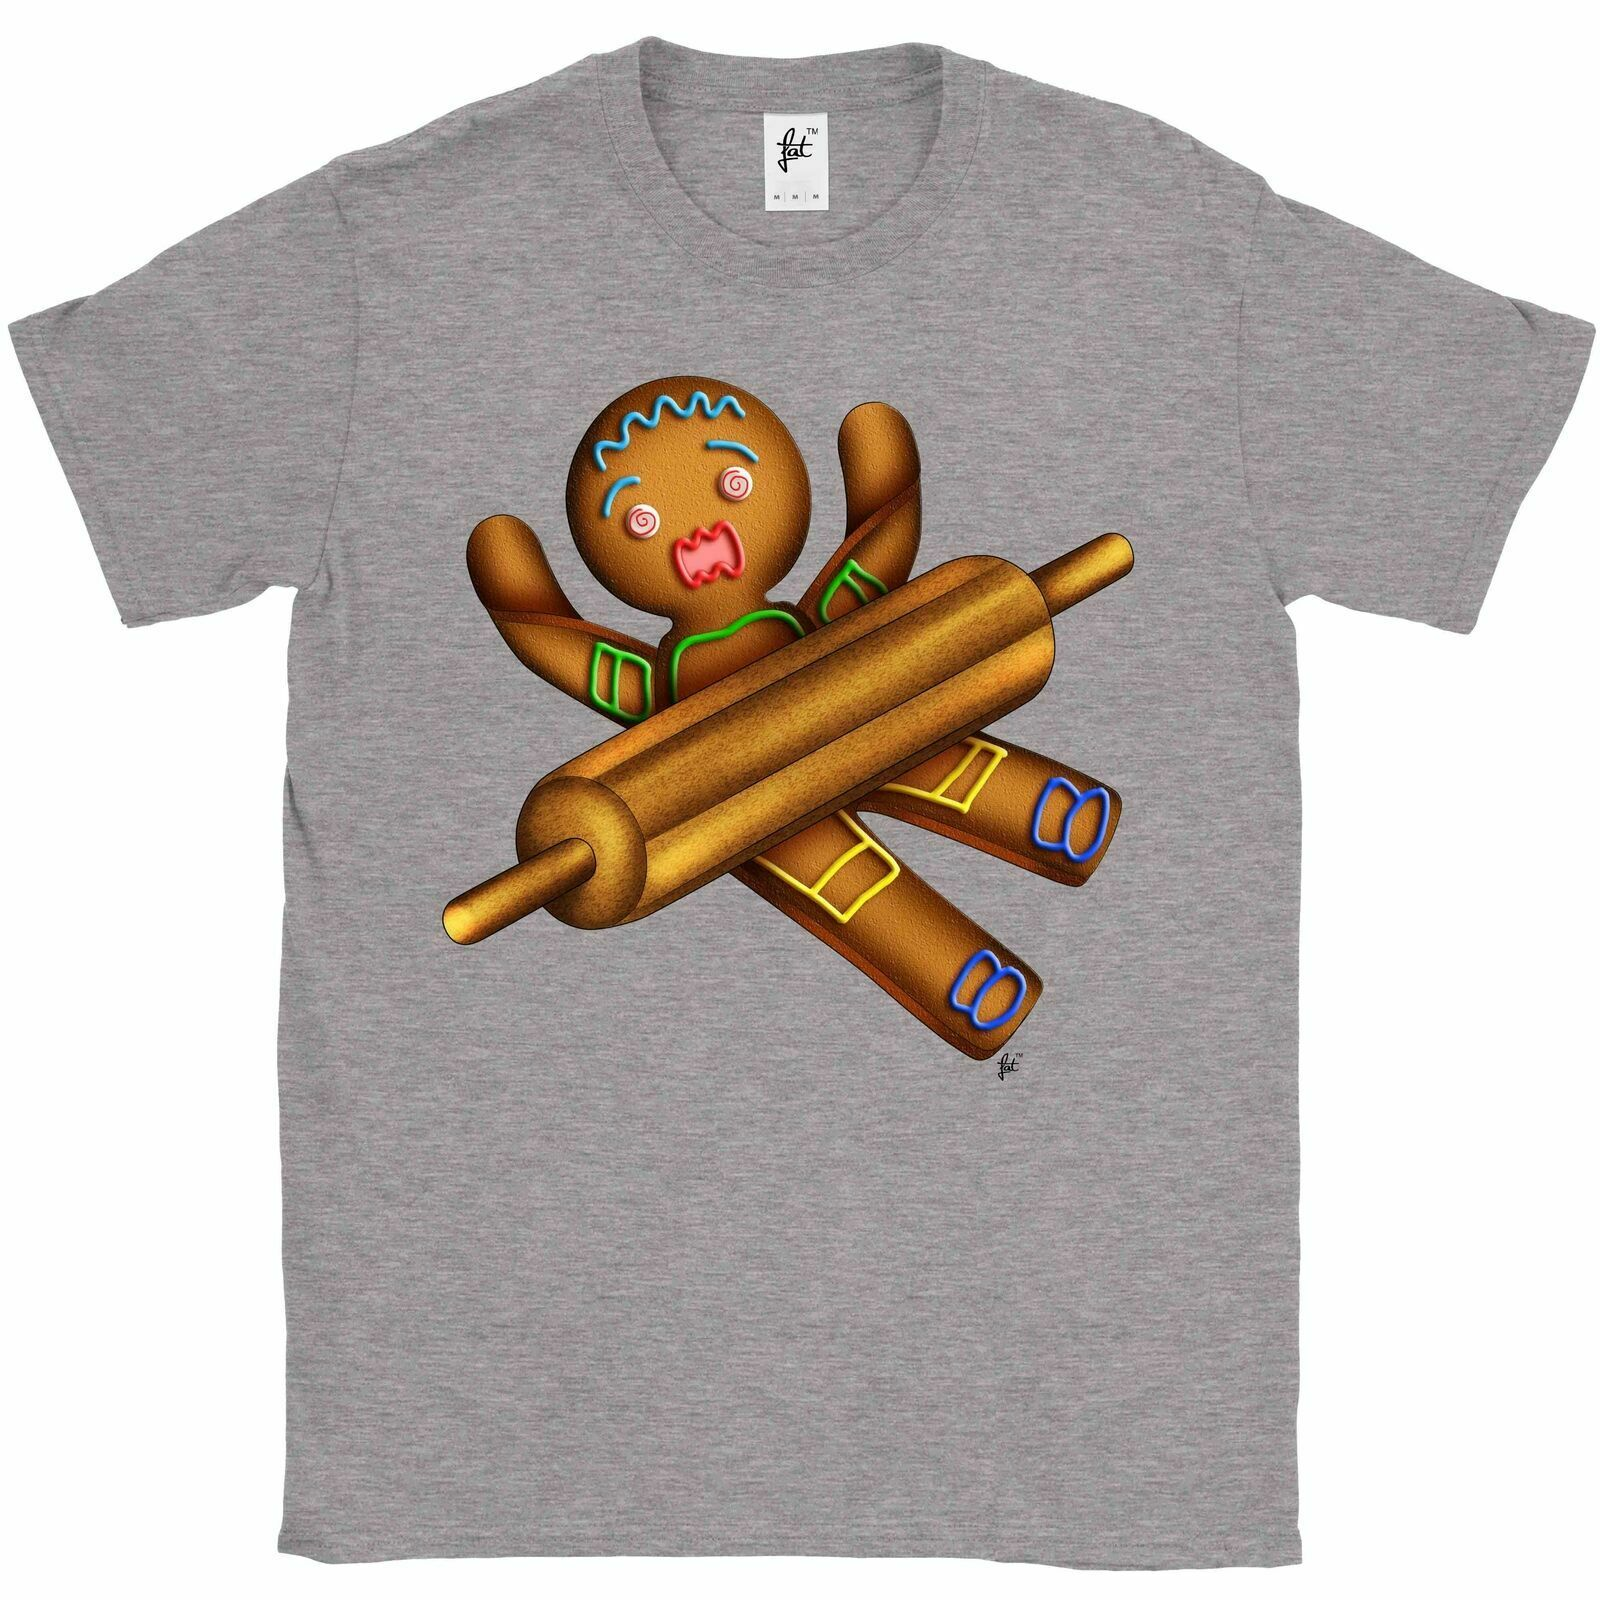 Gingerbread Man With Rolling Pin Being Rolled Kids Boys Girls T-Shirt